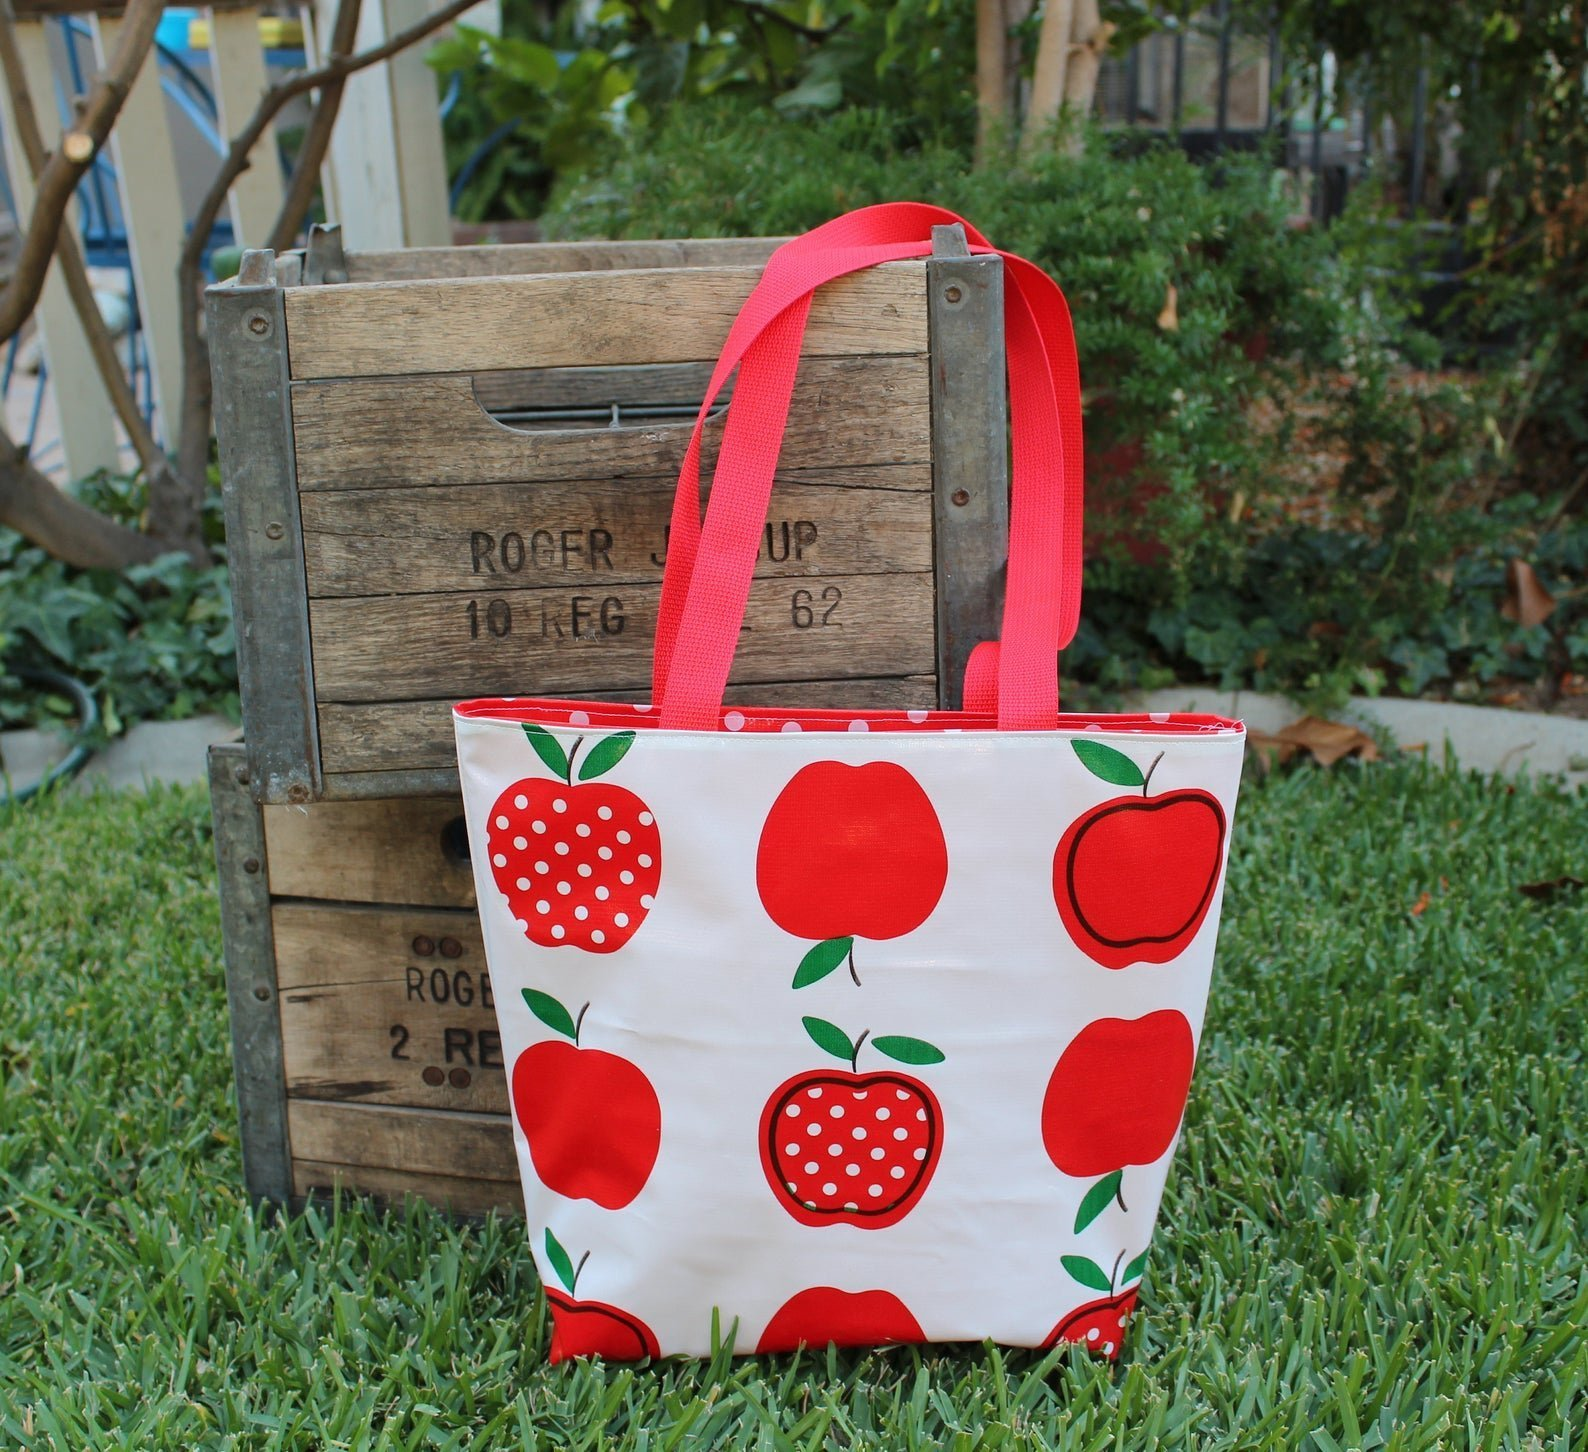 white tote with red apples on it and red handles